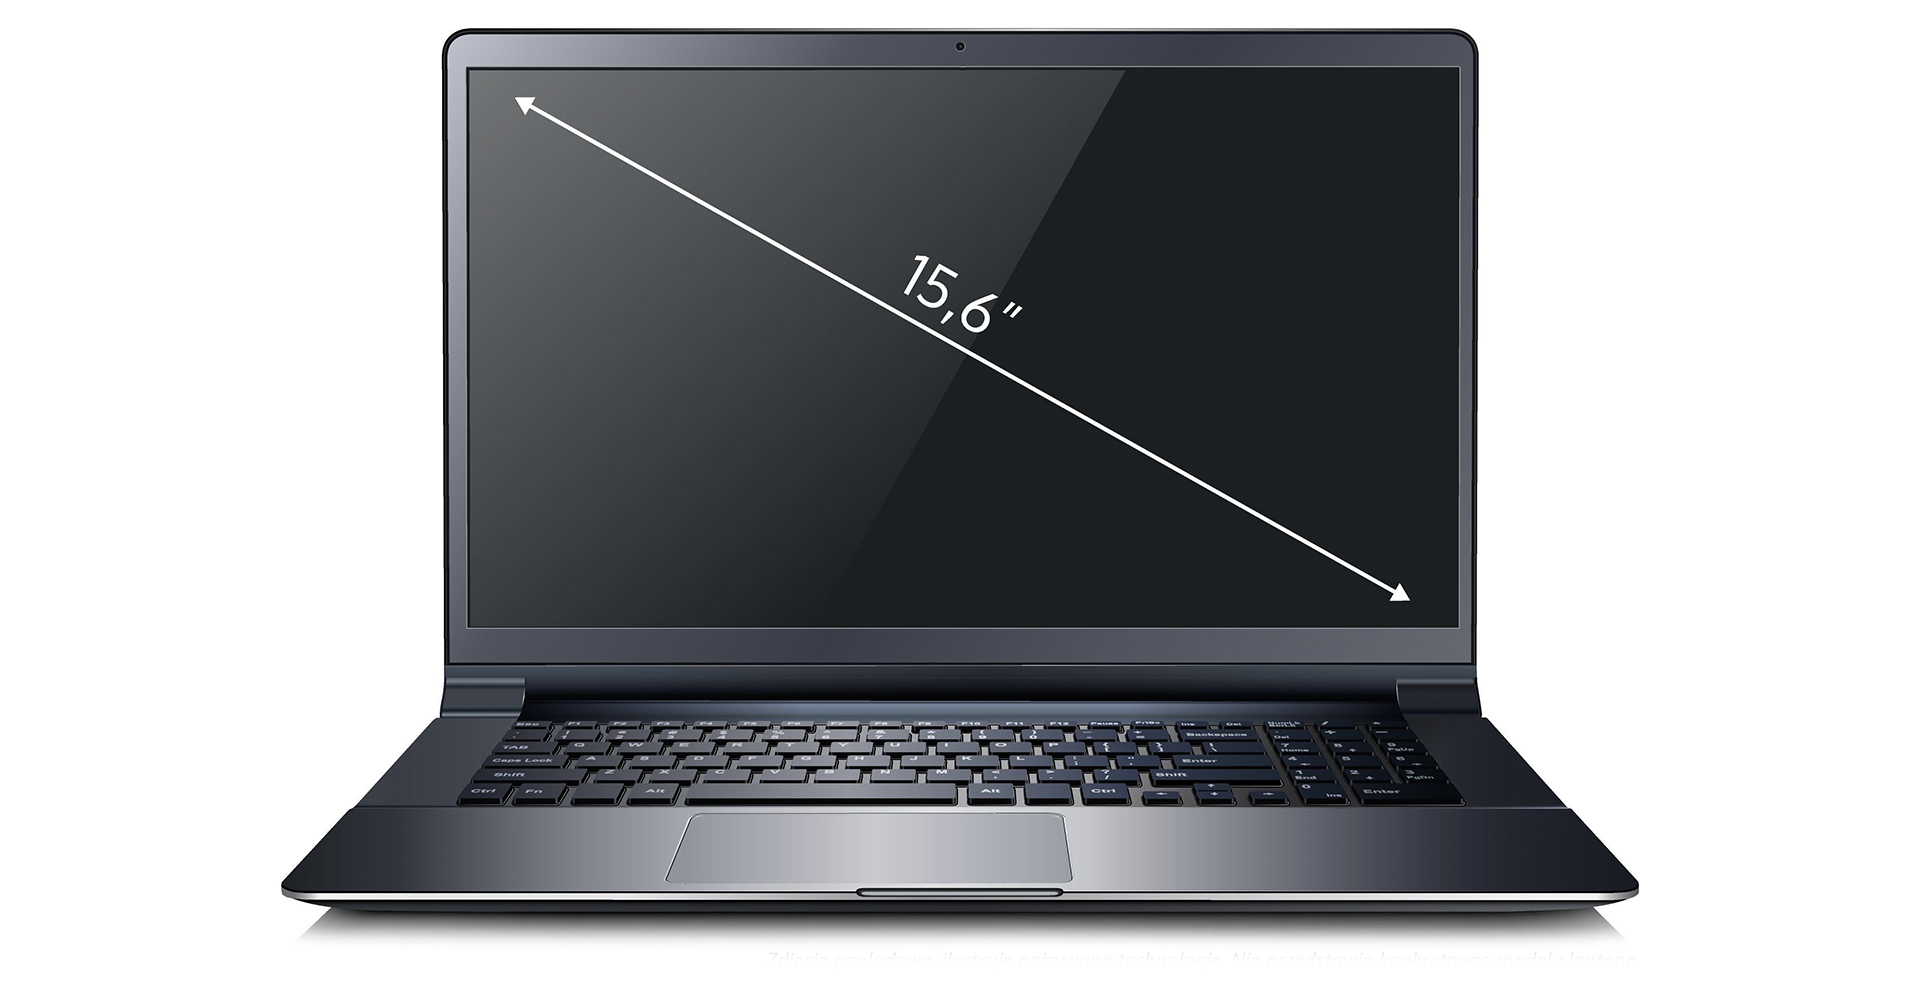 Fujitsu LifeBook A357 (S26391K425V300) 12 GB RAM/ 128 GB SSD/ 2TB HDD/ Windows 10 Pro                             15.6-tollise diagonaaliga